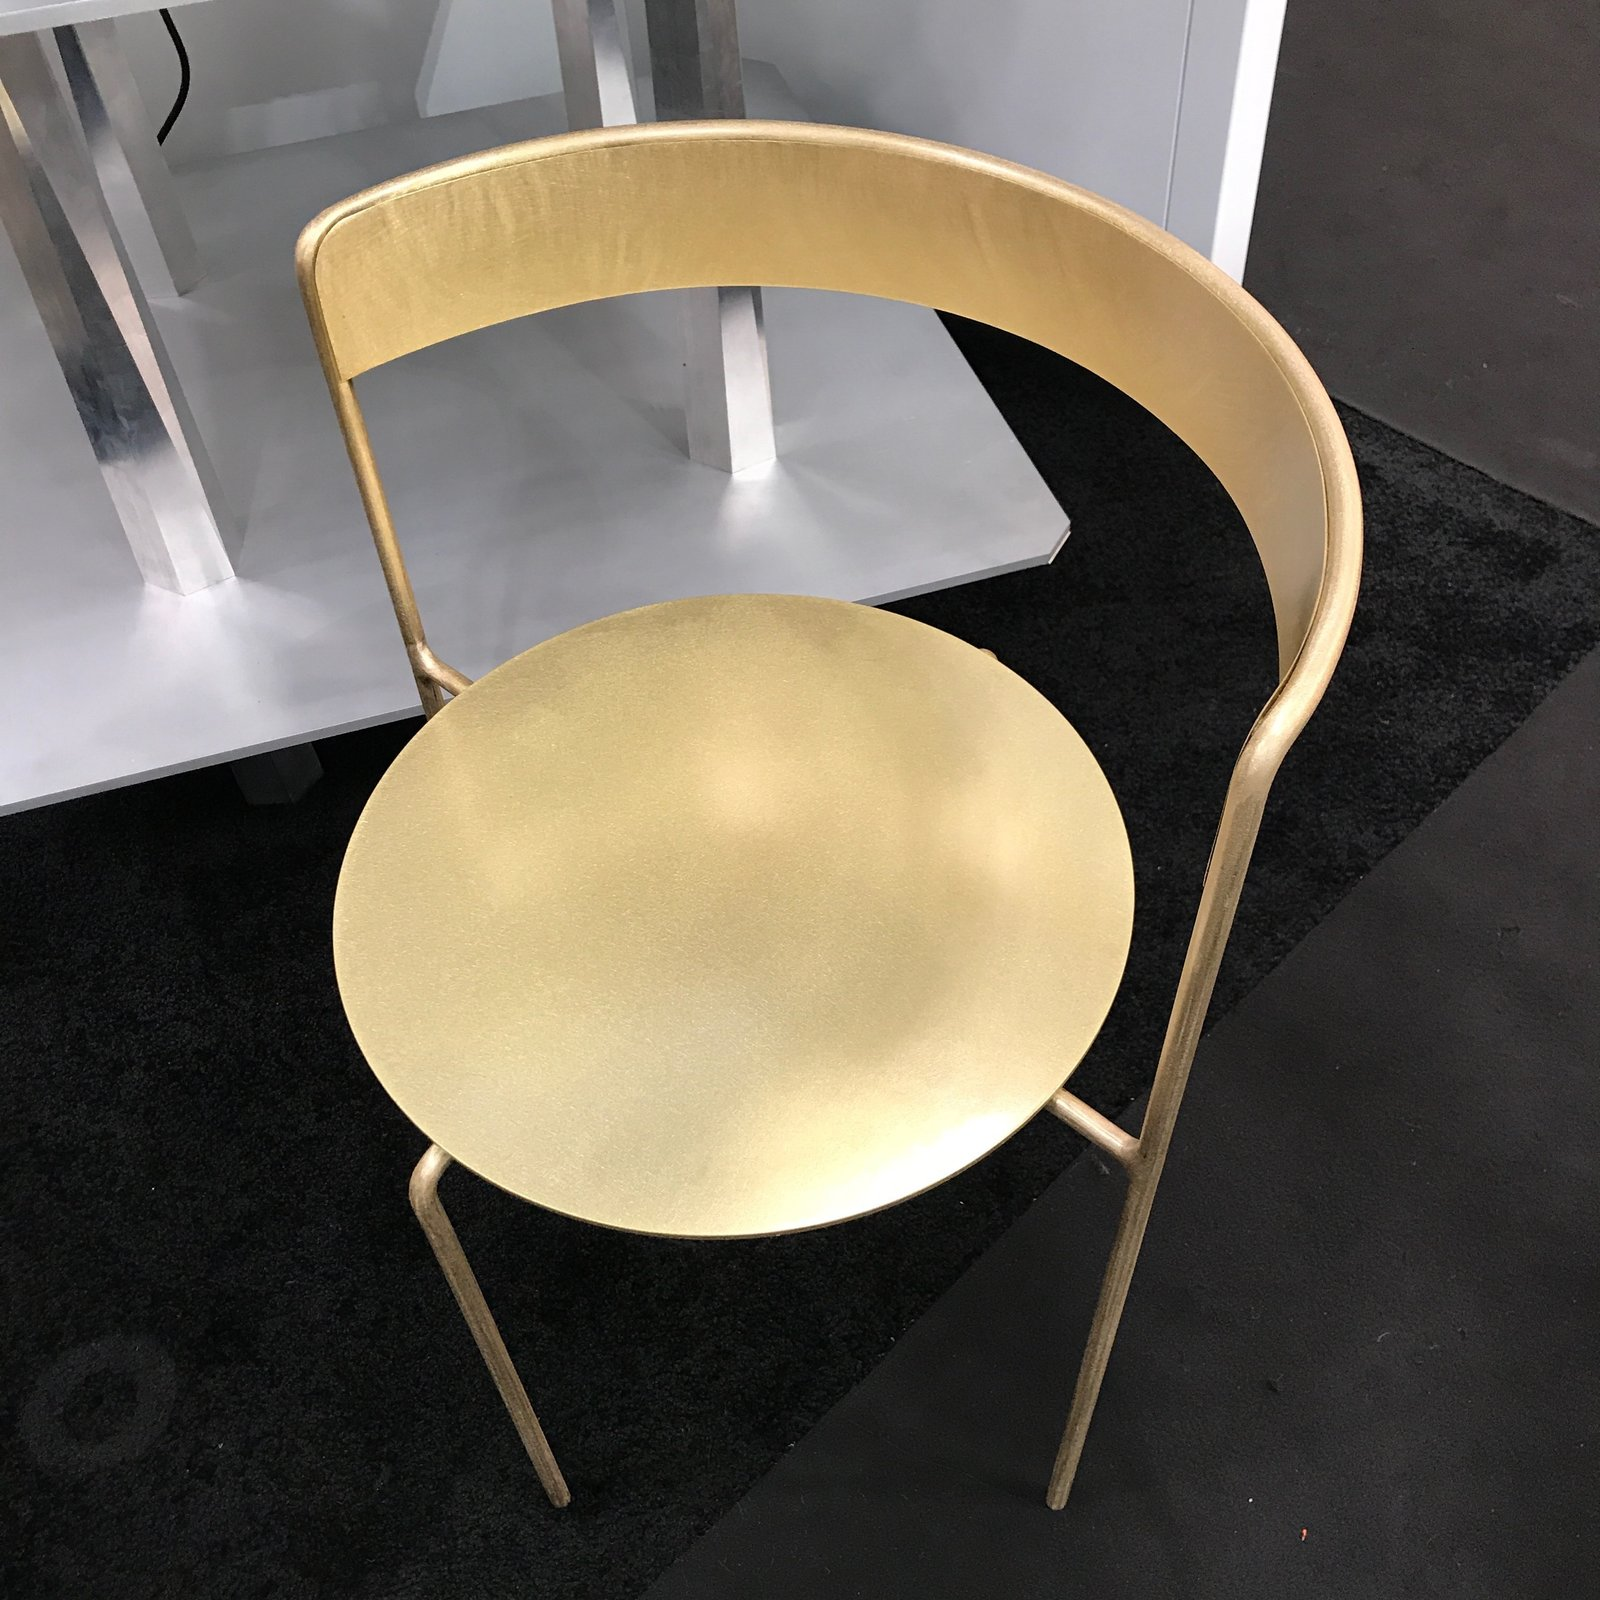 The Brass Avoa chair, designed by Pedro Paolo Venzon for Matter.  Photo 7 of 36 in The Best of New York Design Week 2017